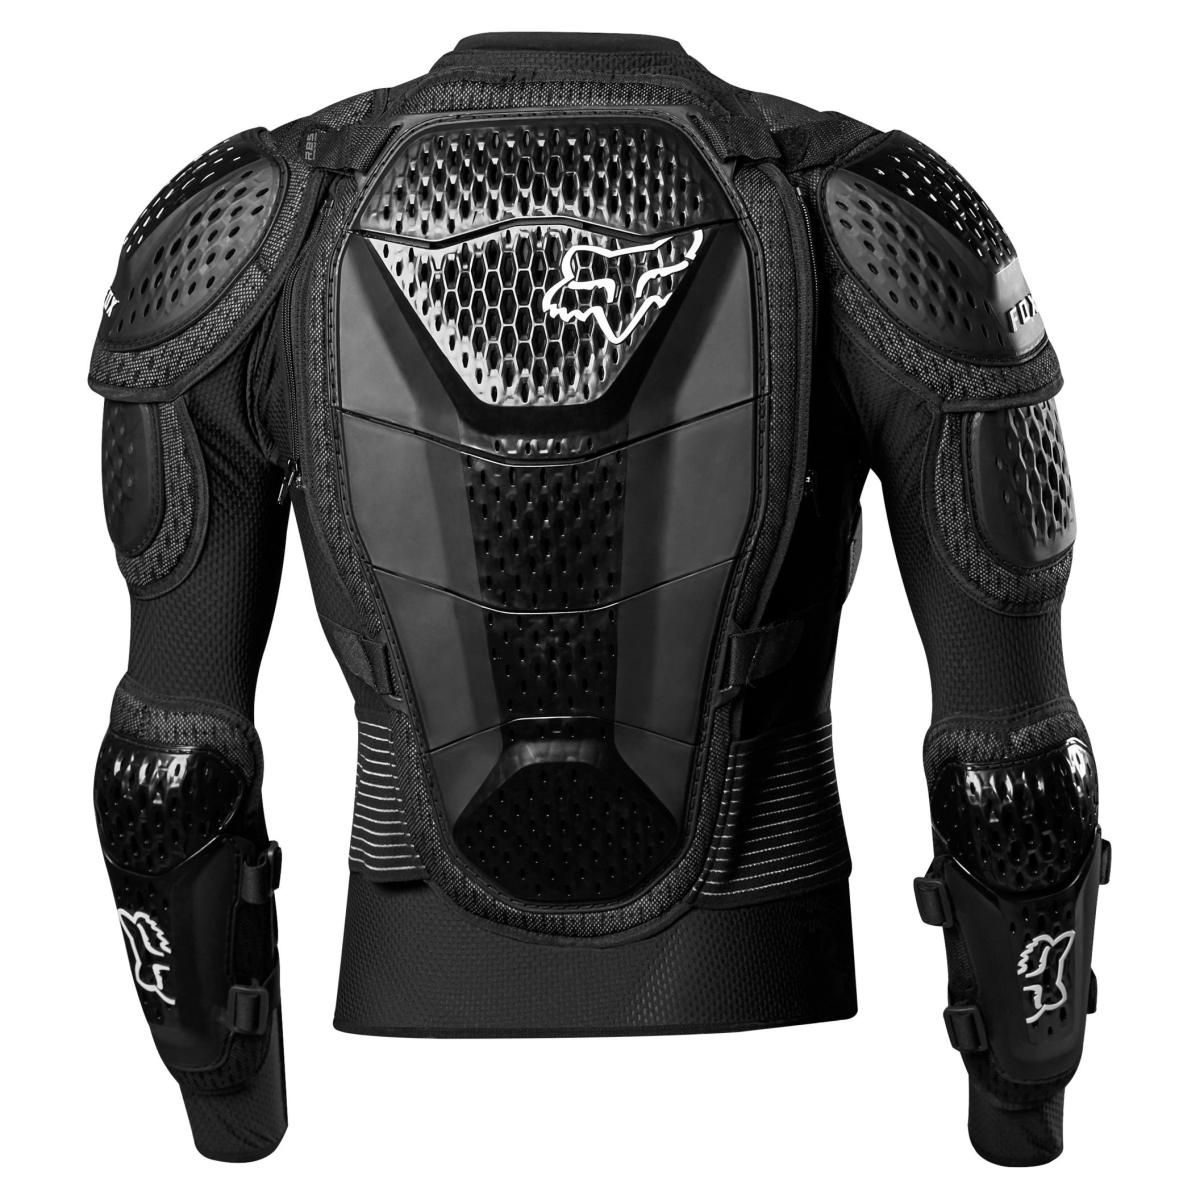 protections off road plastron gilet gilet protection fox titan sport. Black Bedroom Furniture Sets. Home Design Ideas